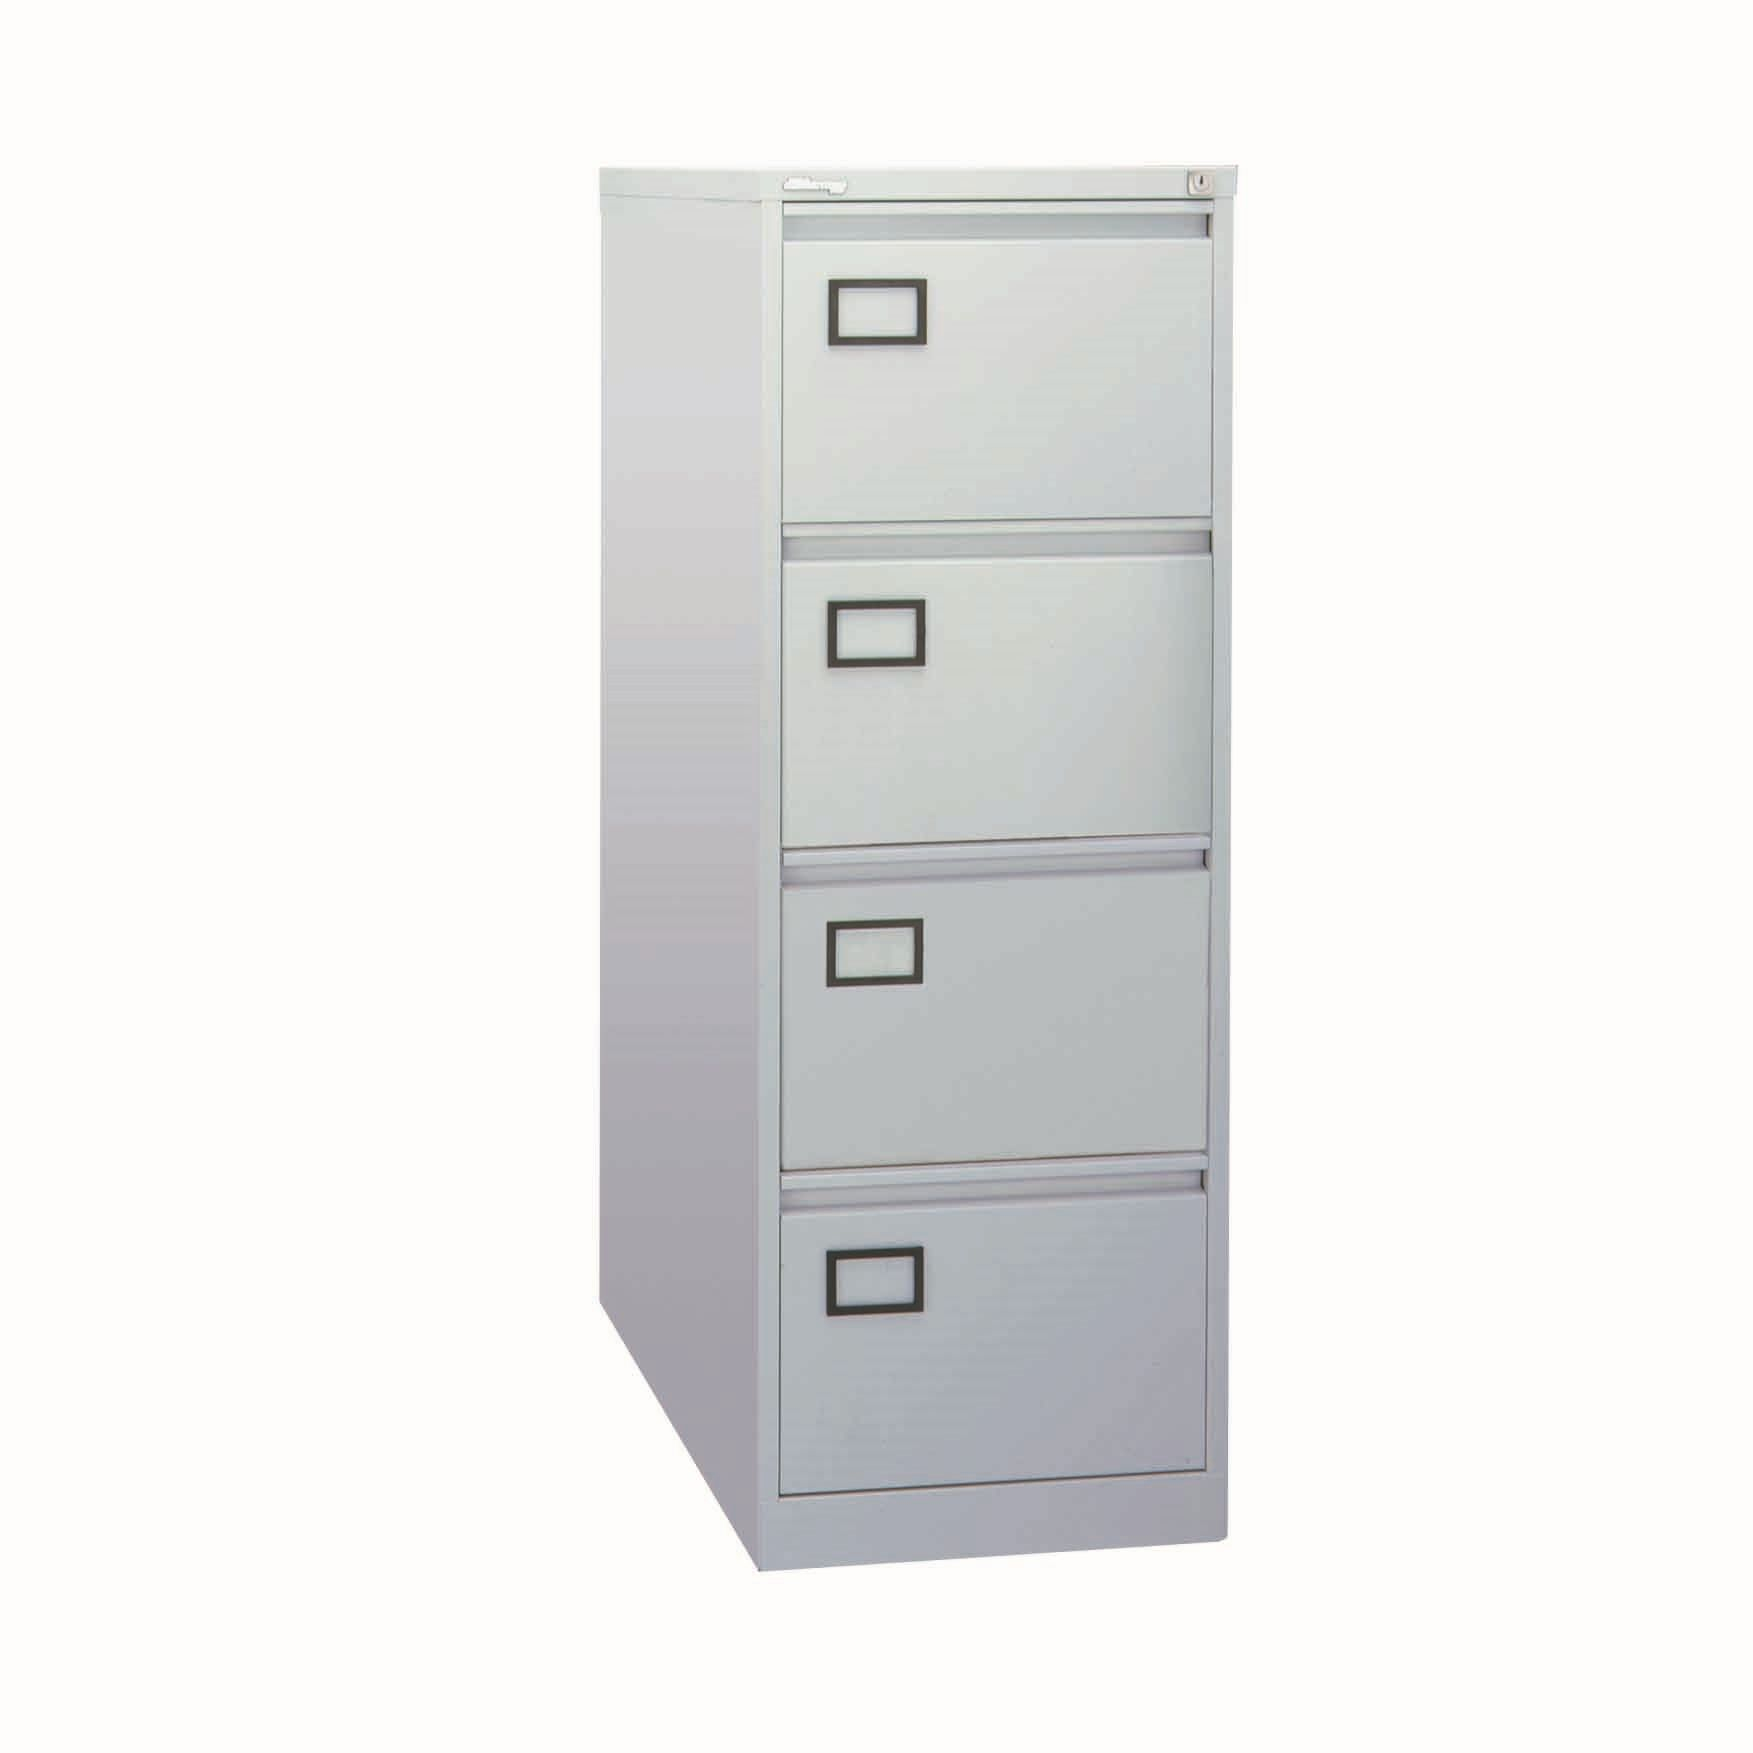 4 Drawer Locking Filing Cabinet